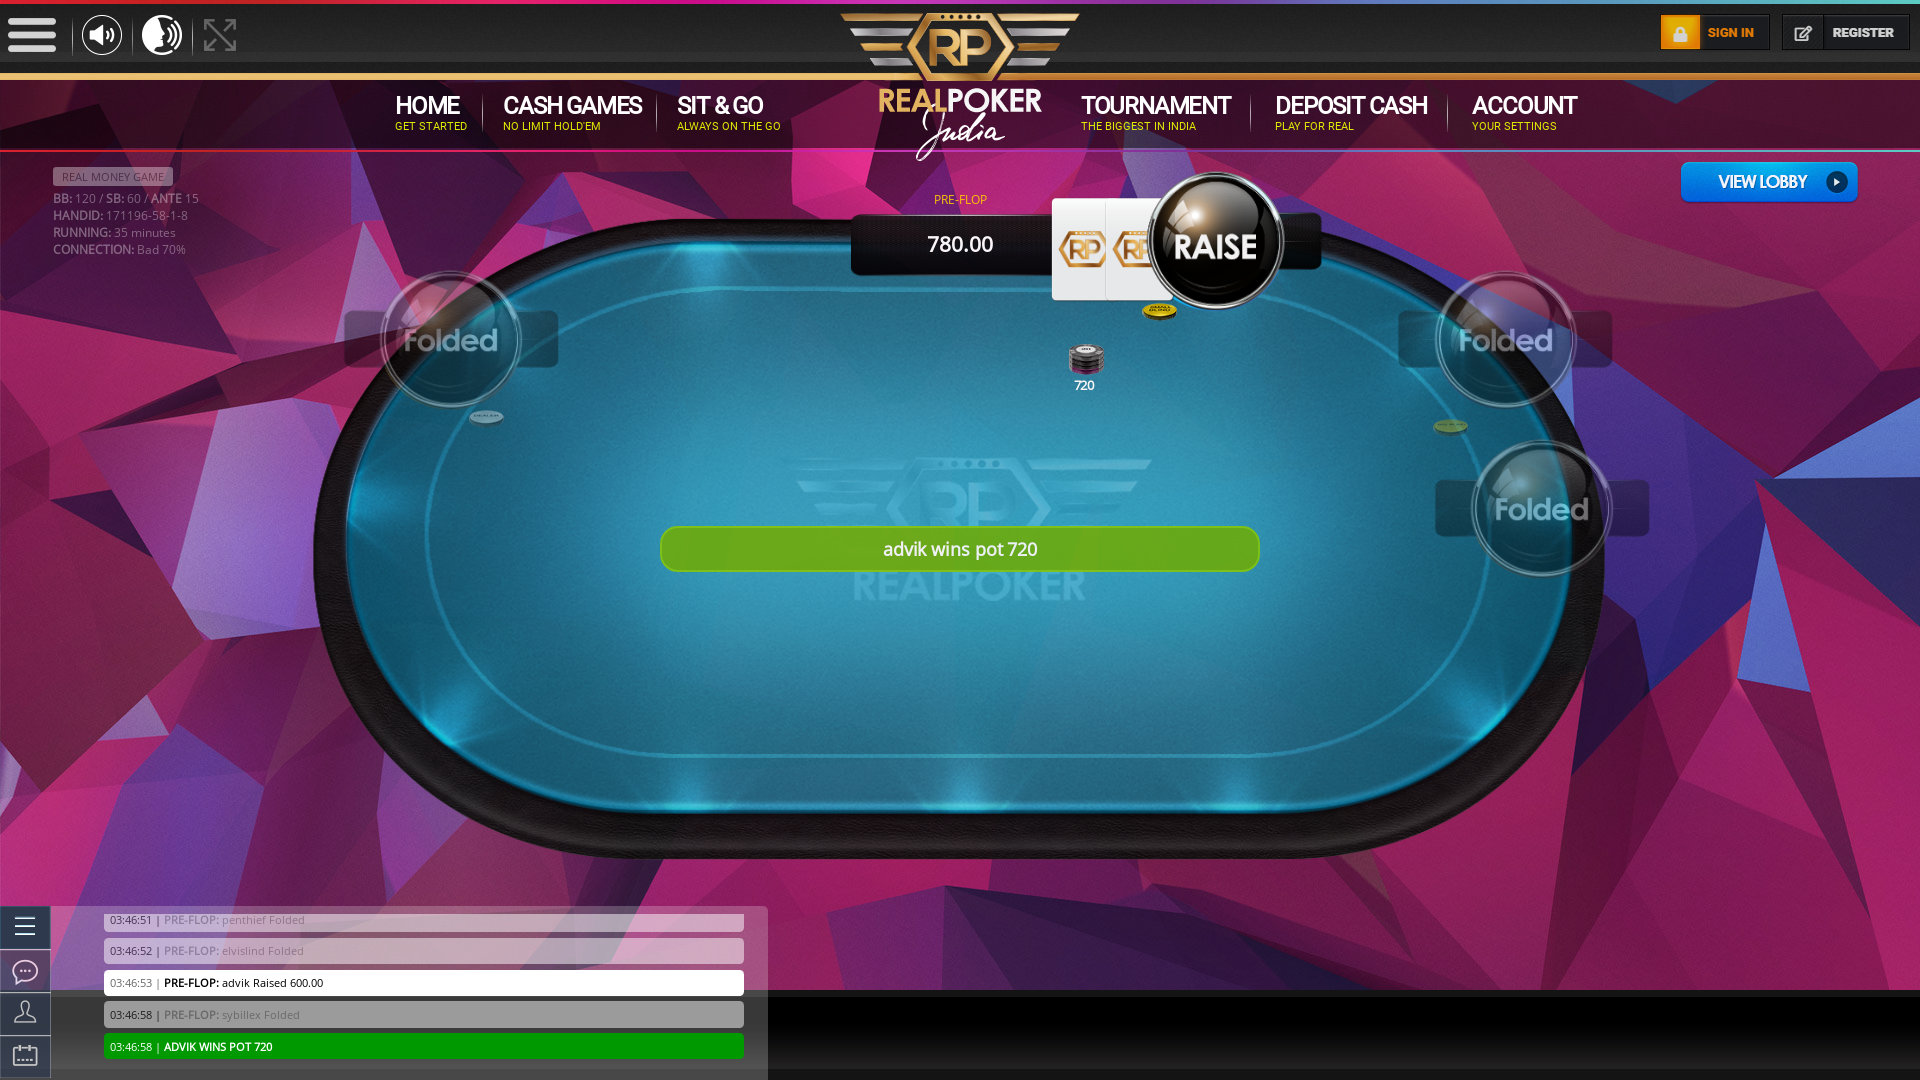 Indian poker on a 10 player table in the 35th minute